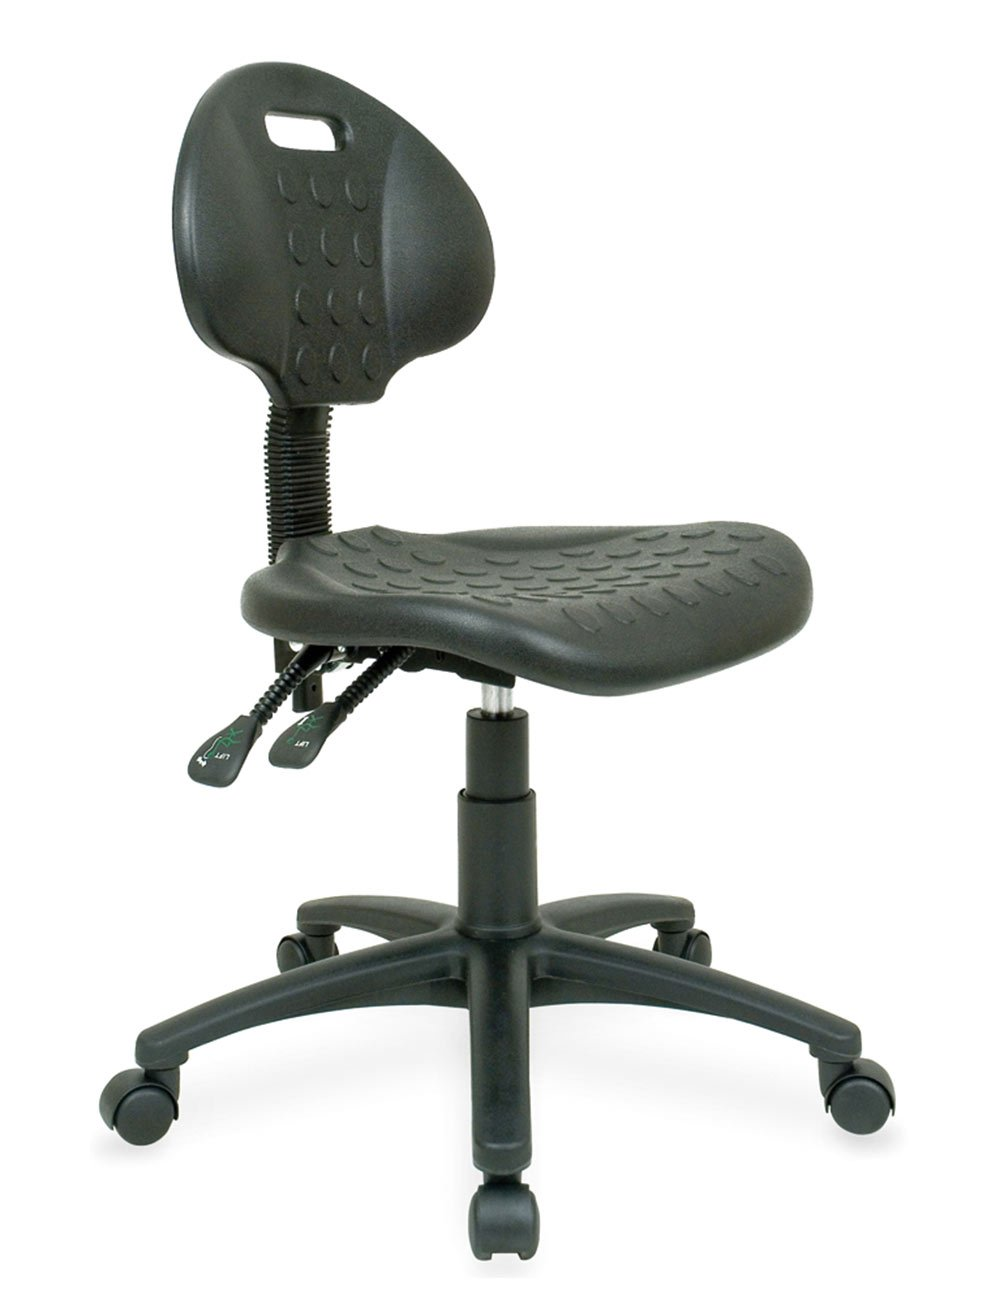 Industrial Ergonomic Arms : Industrial seating ind online ergonomics